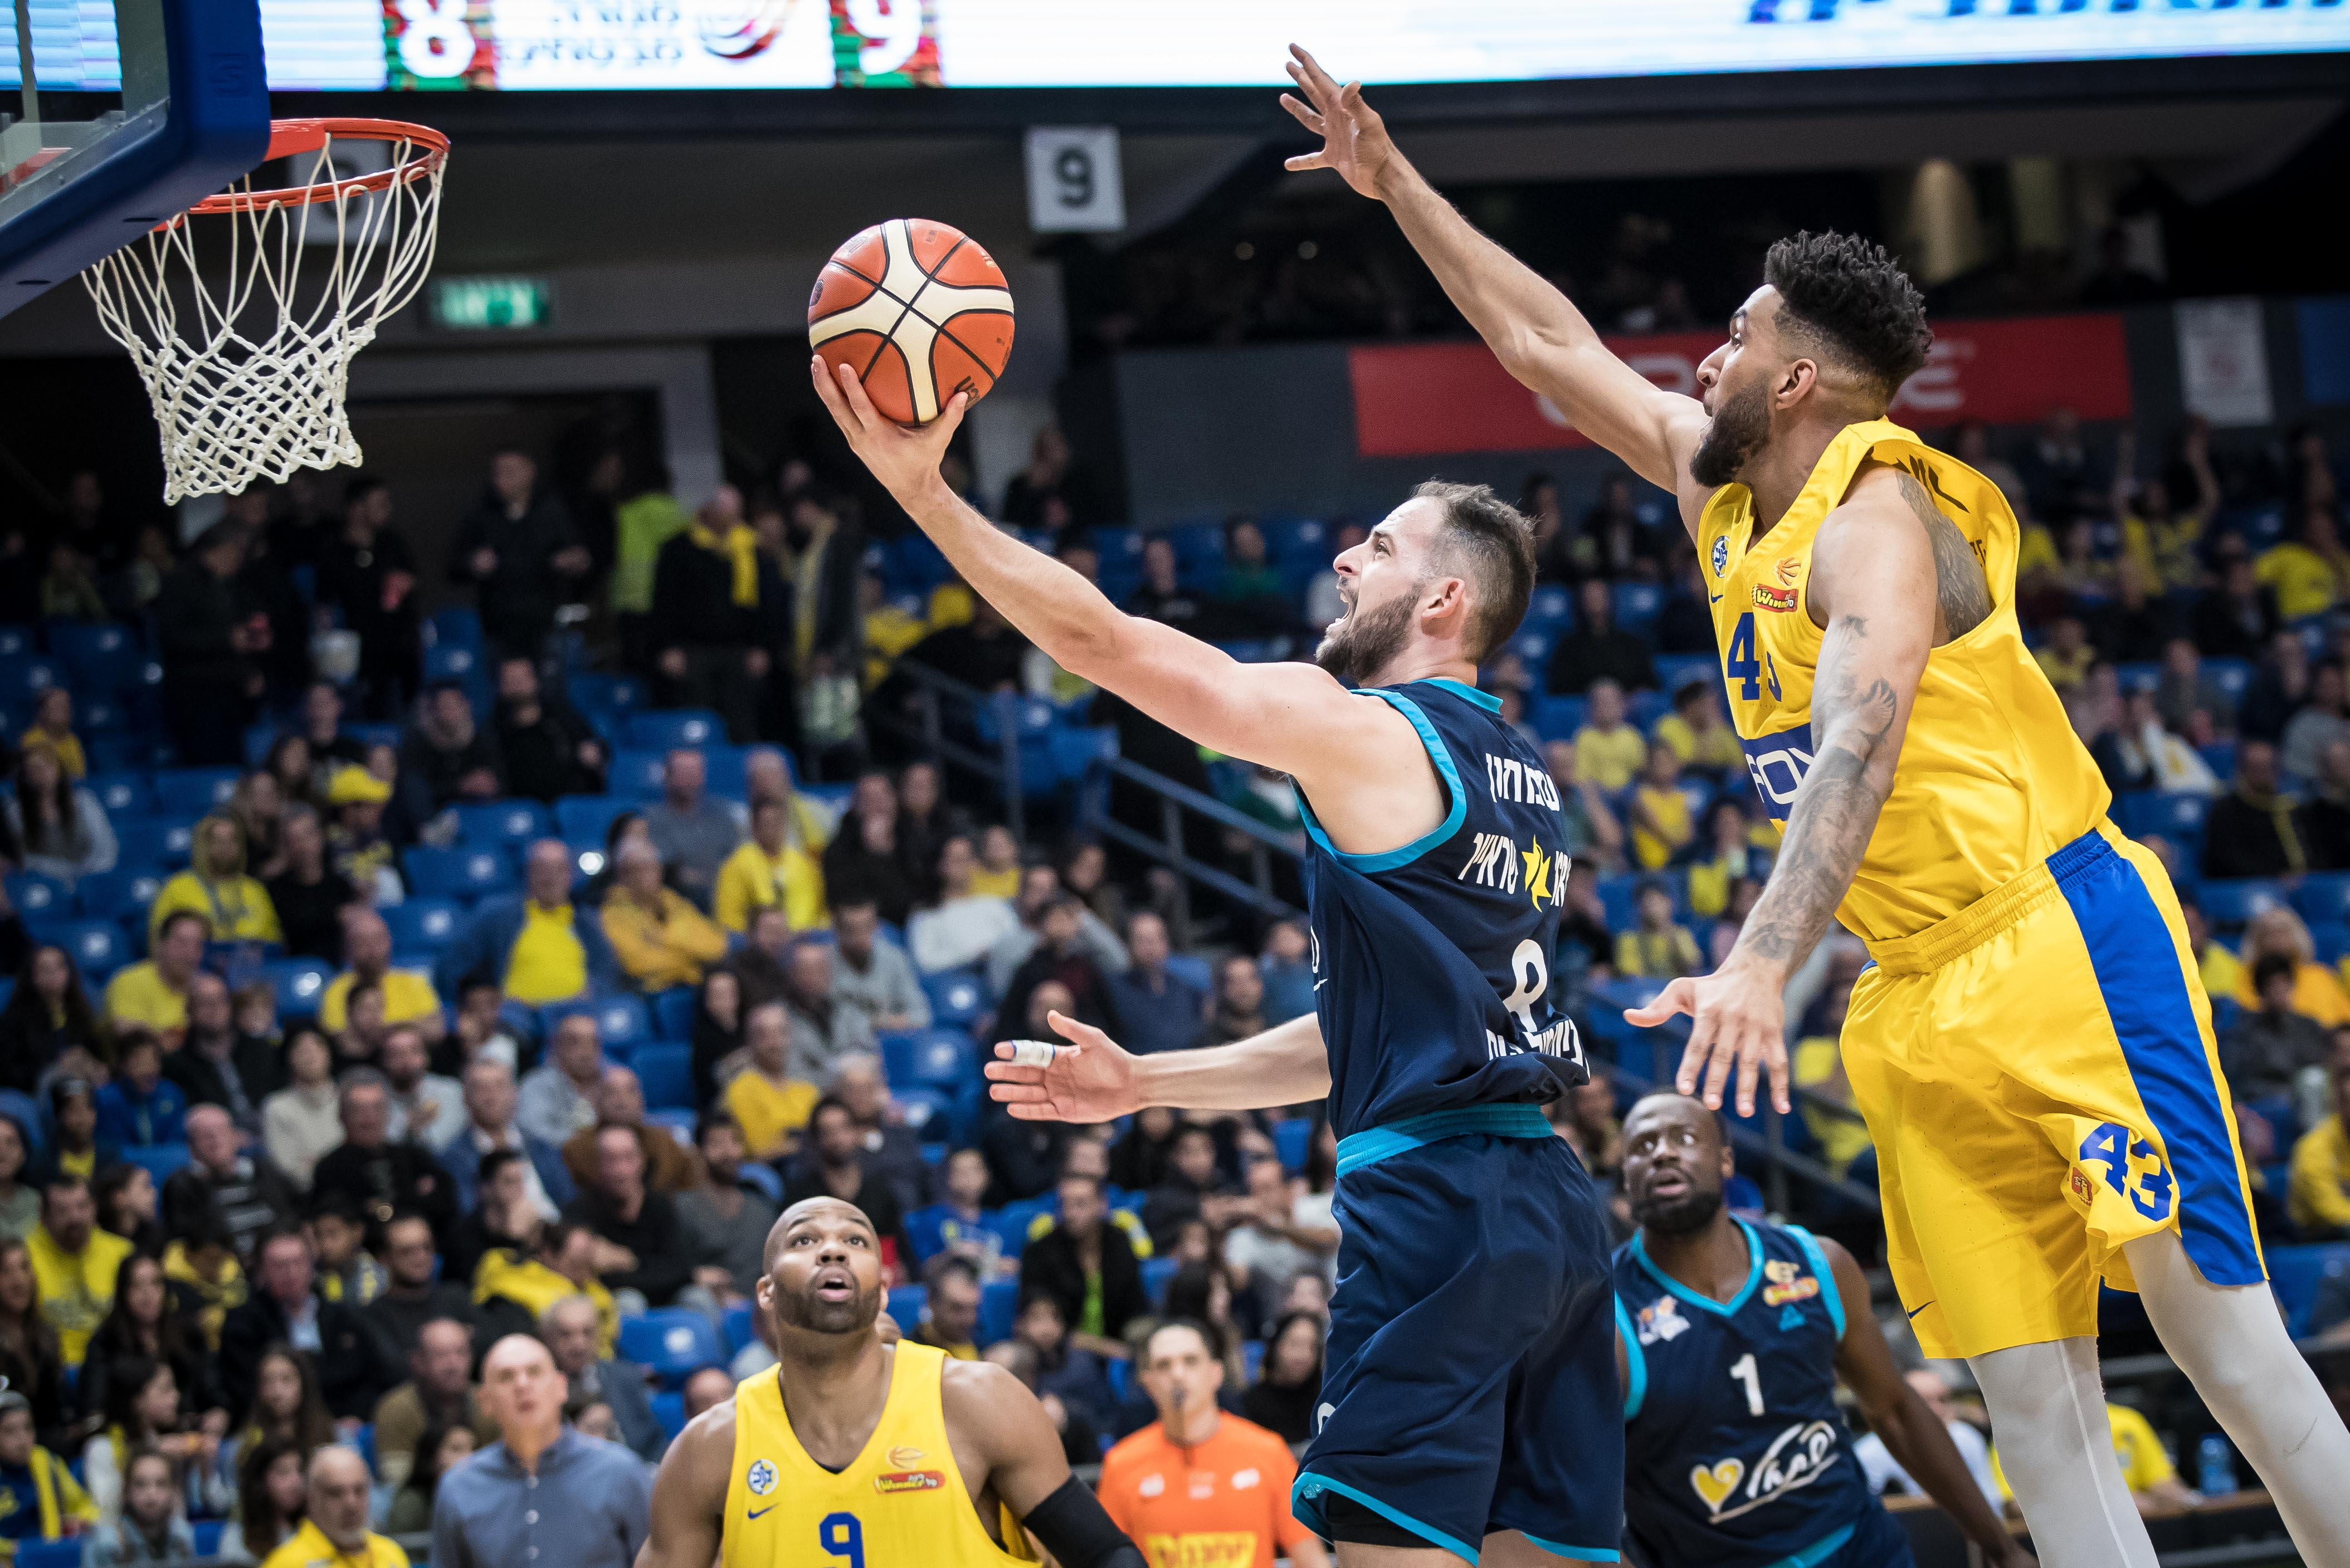 Maccabi Tel Aviv's Block Party